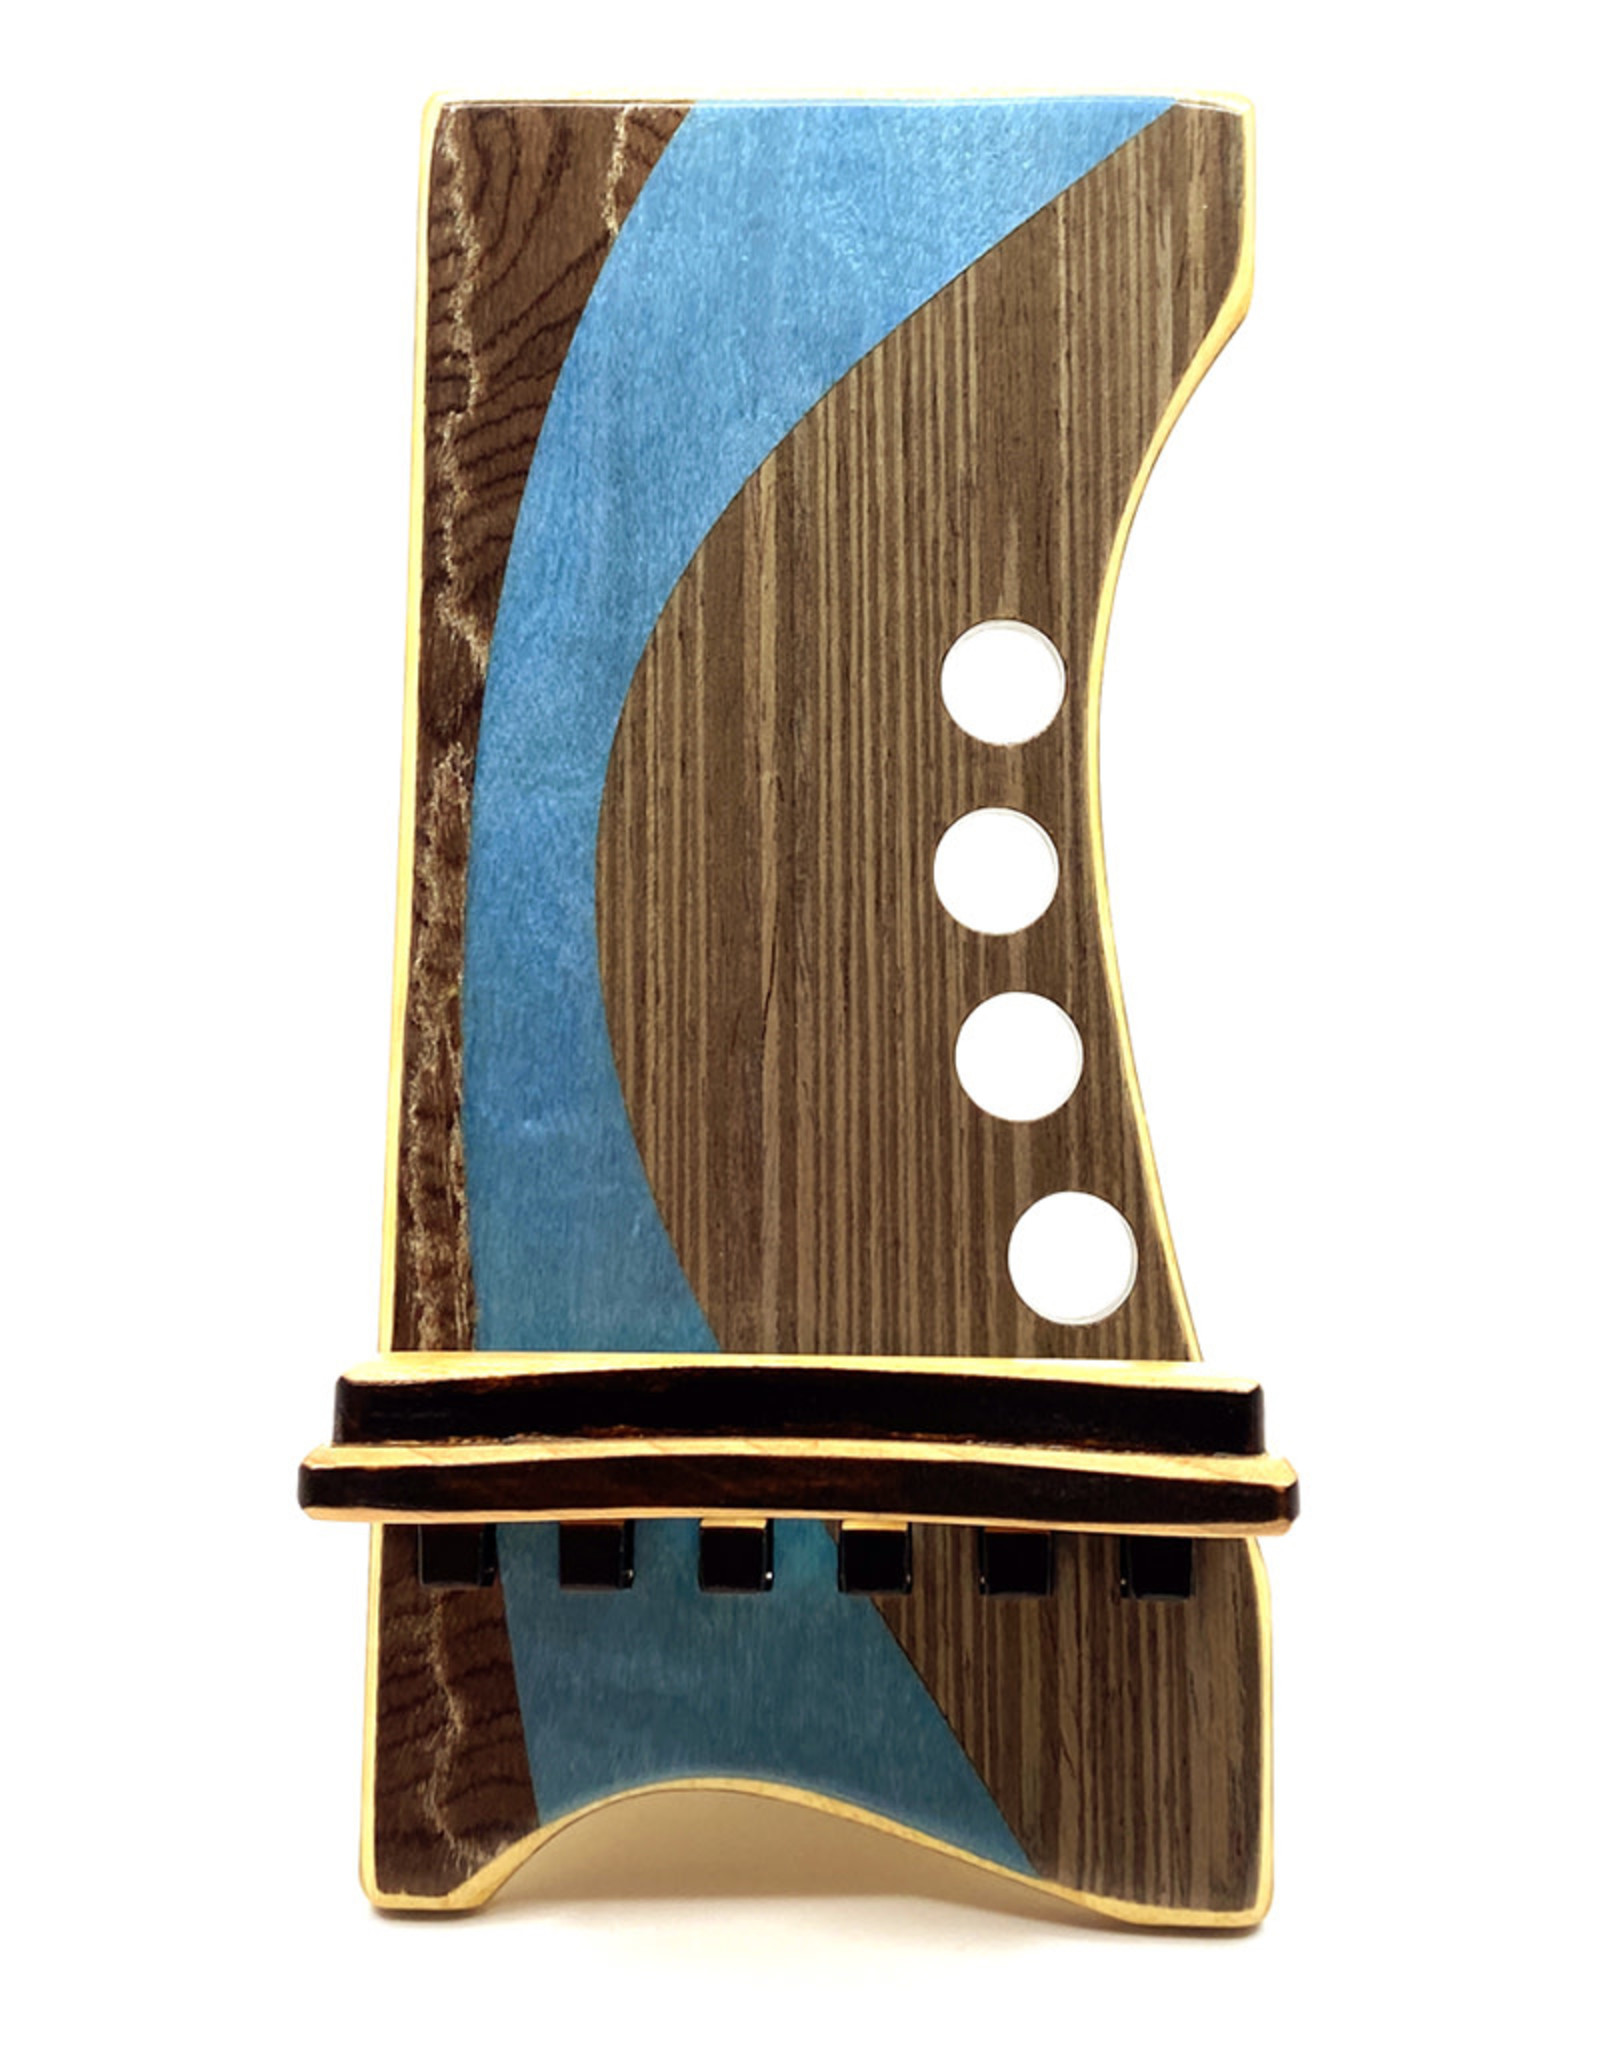 LOST ART WOODWORKS BLUE STRIPED IV MARQUETRY INLAID PHONE STAND